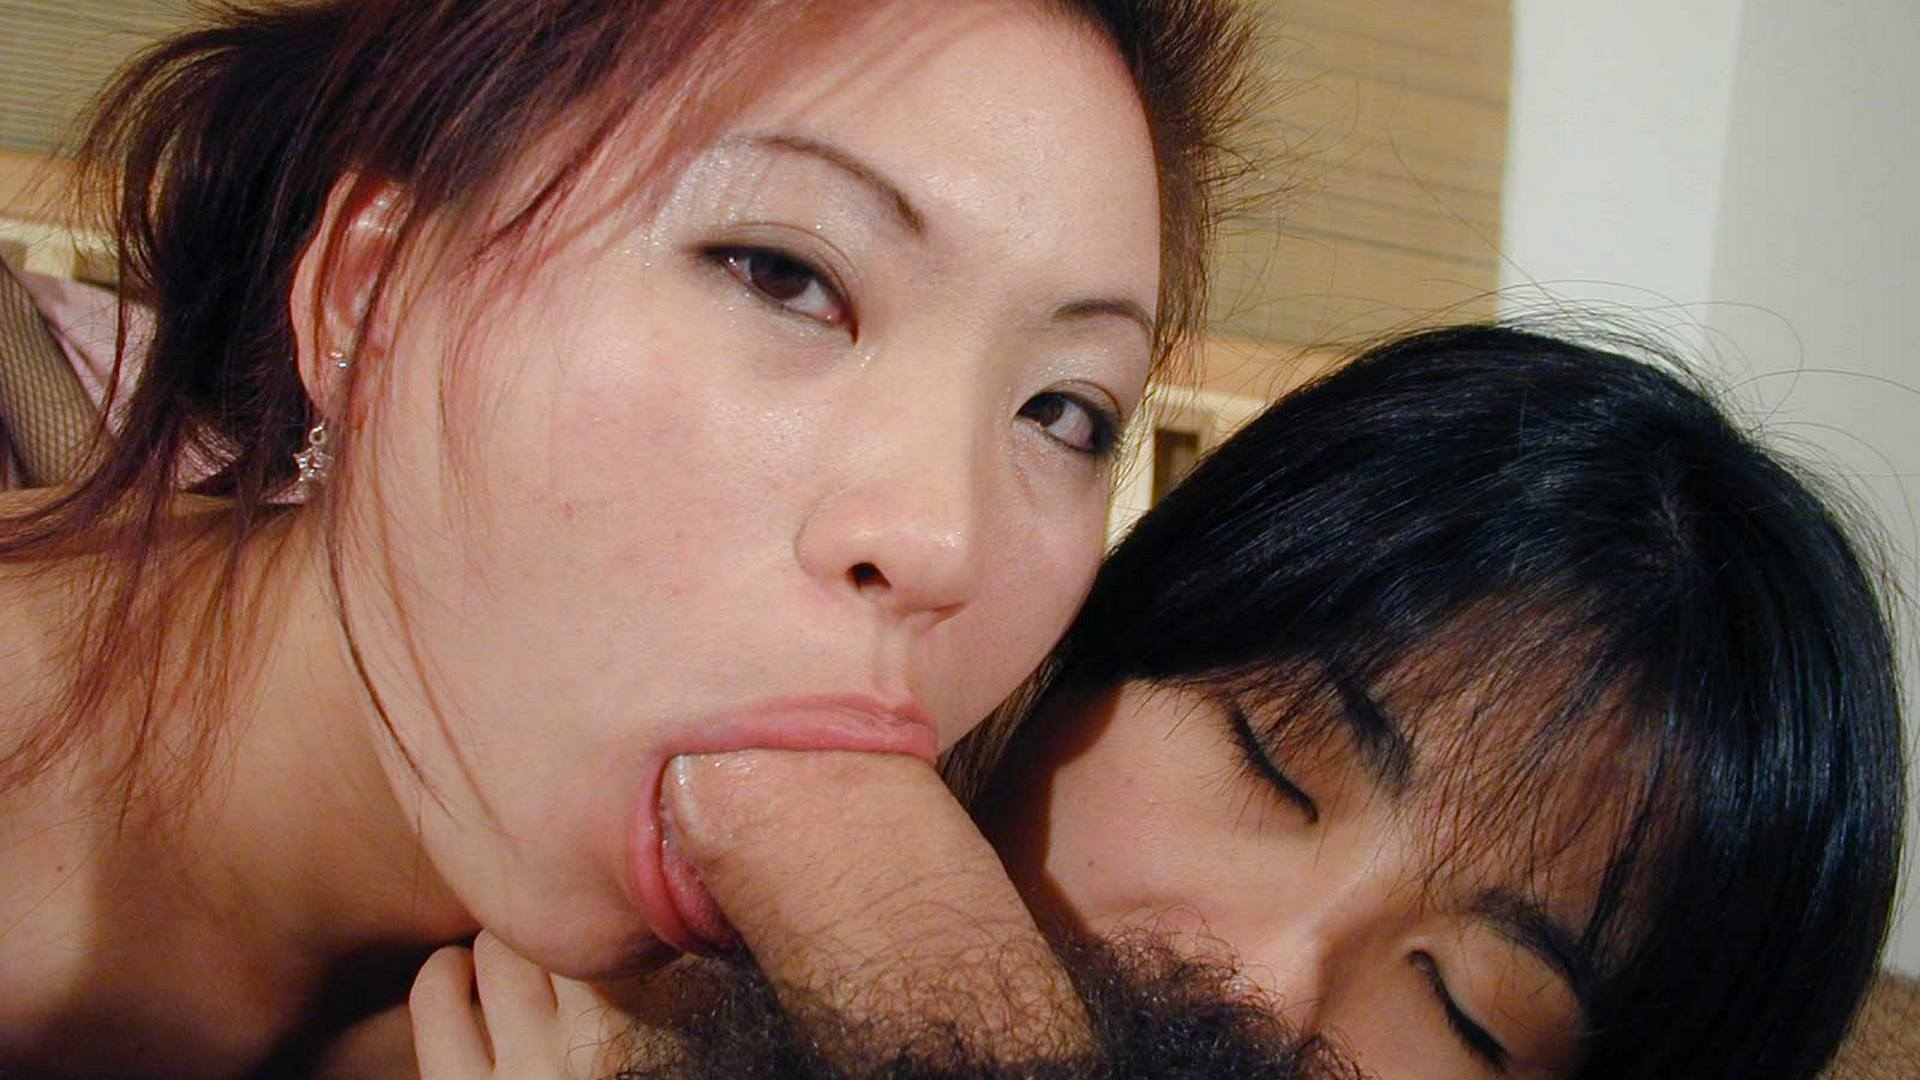 AsianSexClub - Exclusive Asian Amateur Videos